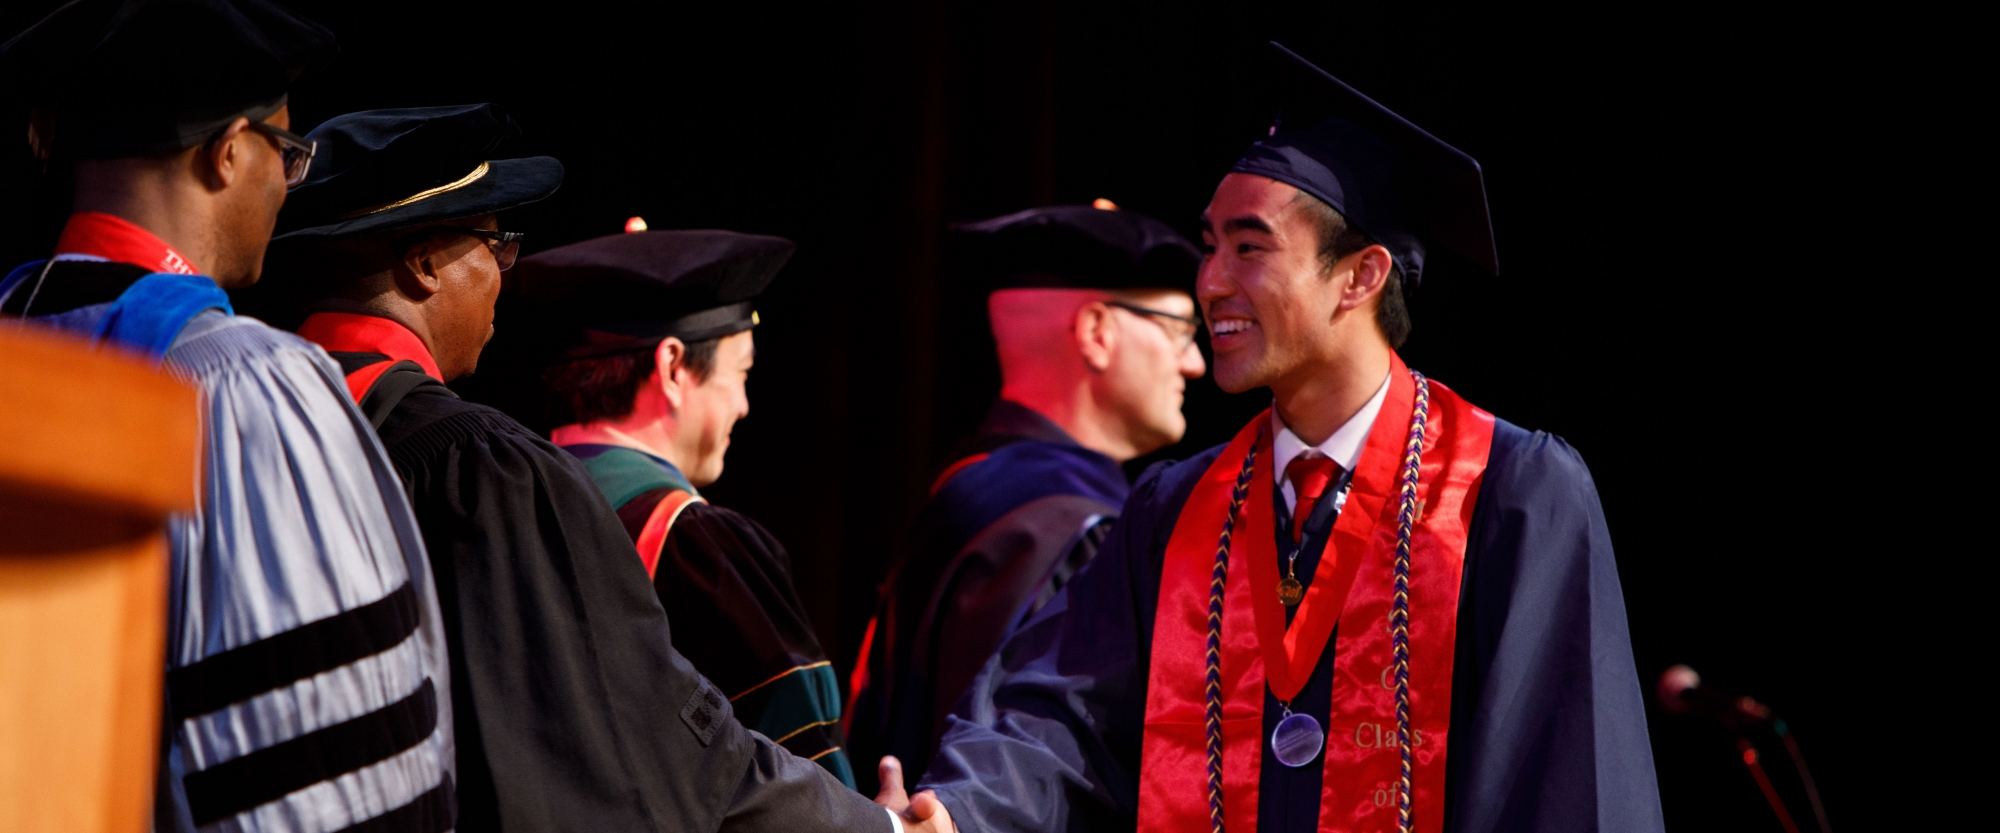 A male graduating student shaking hands with a dean